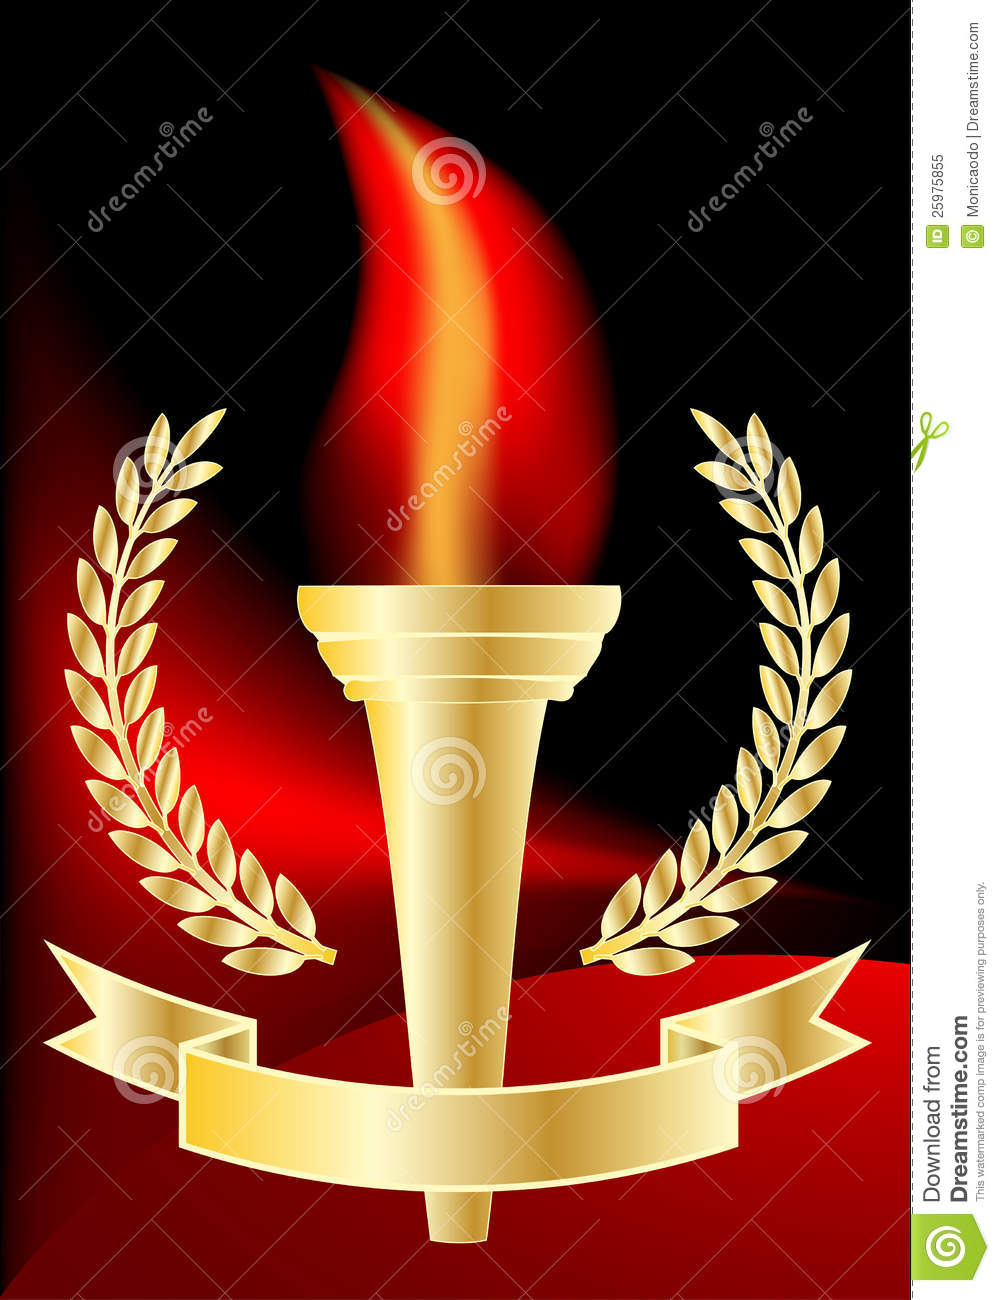 Olympic torch stock vector. Image of champion, freedom - 25975855 for Olympic Torch Vector Free Download  539wja